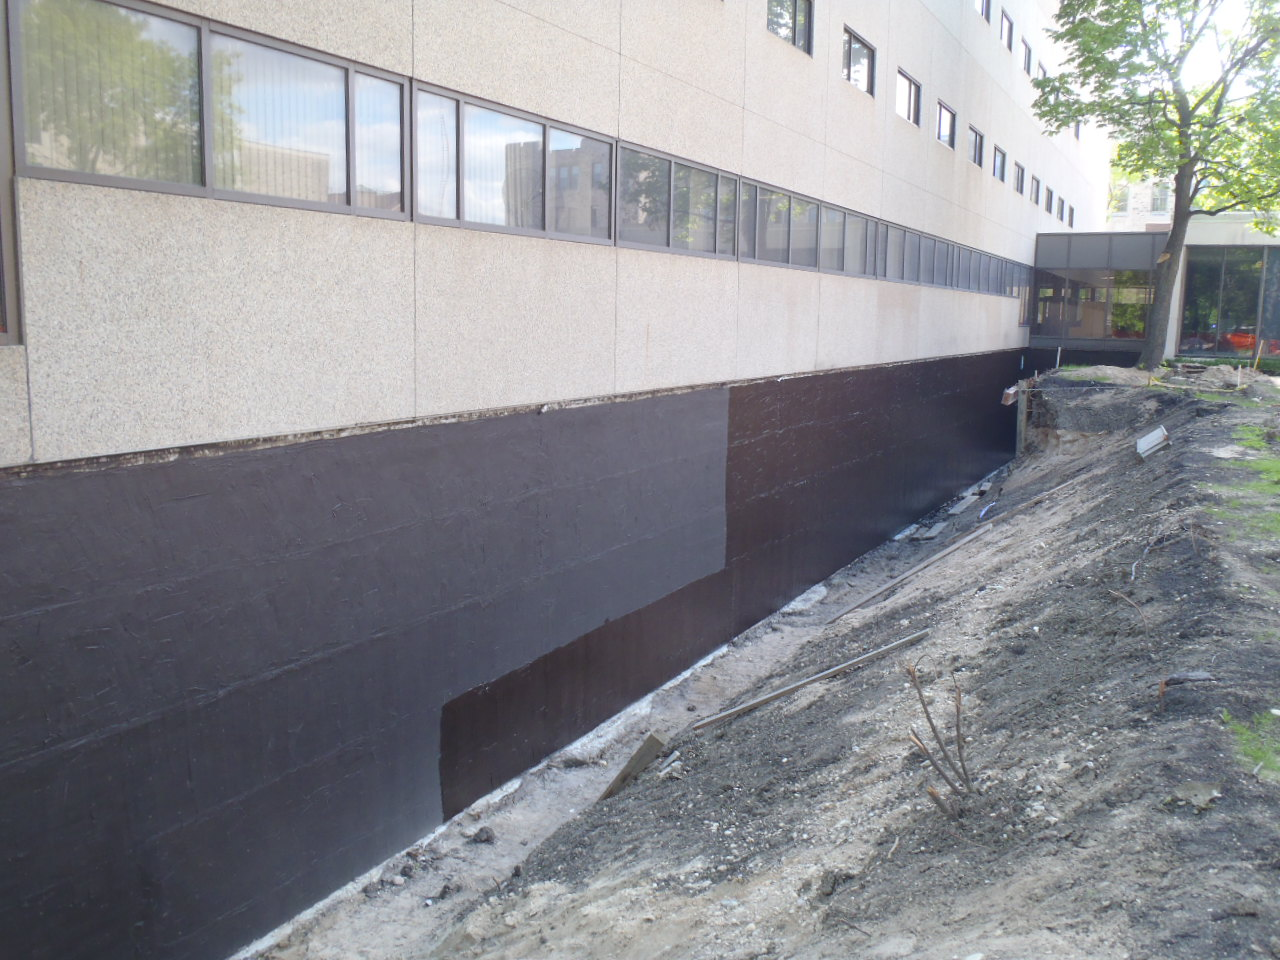 Waterproofing Existing Foundation Walls : Crosier kilgour partners foundation waterproofing